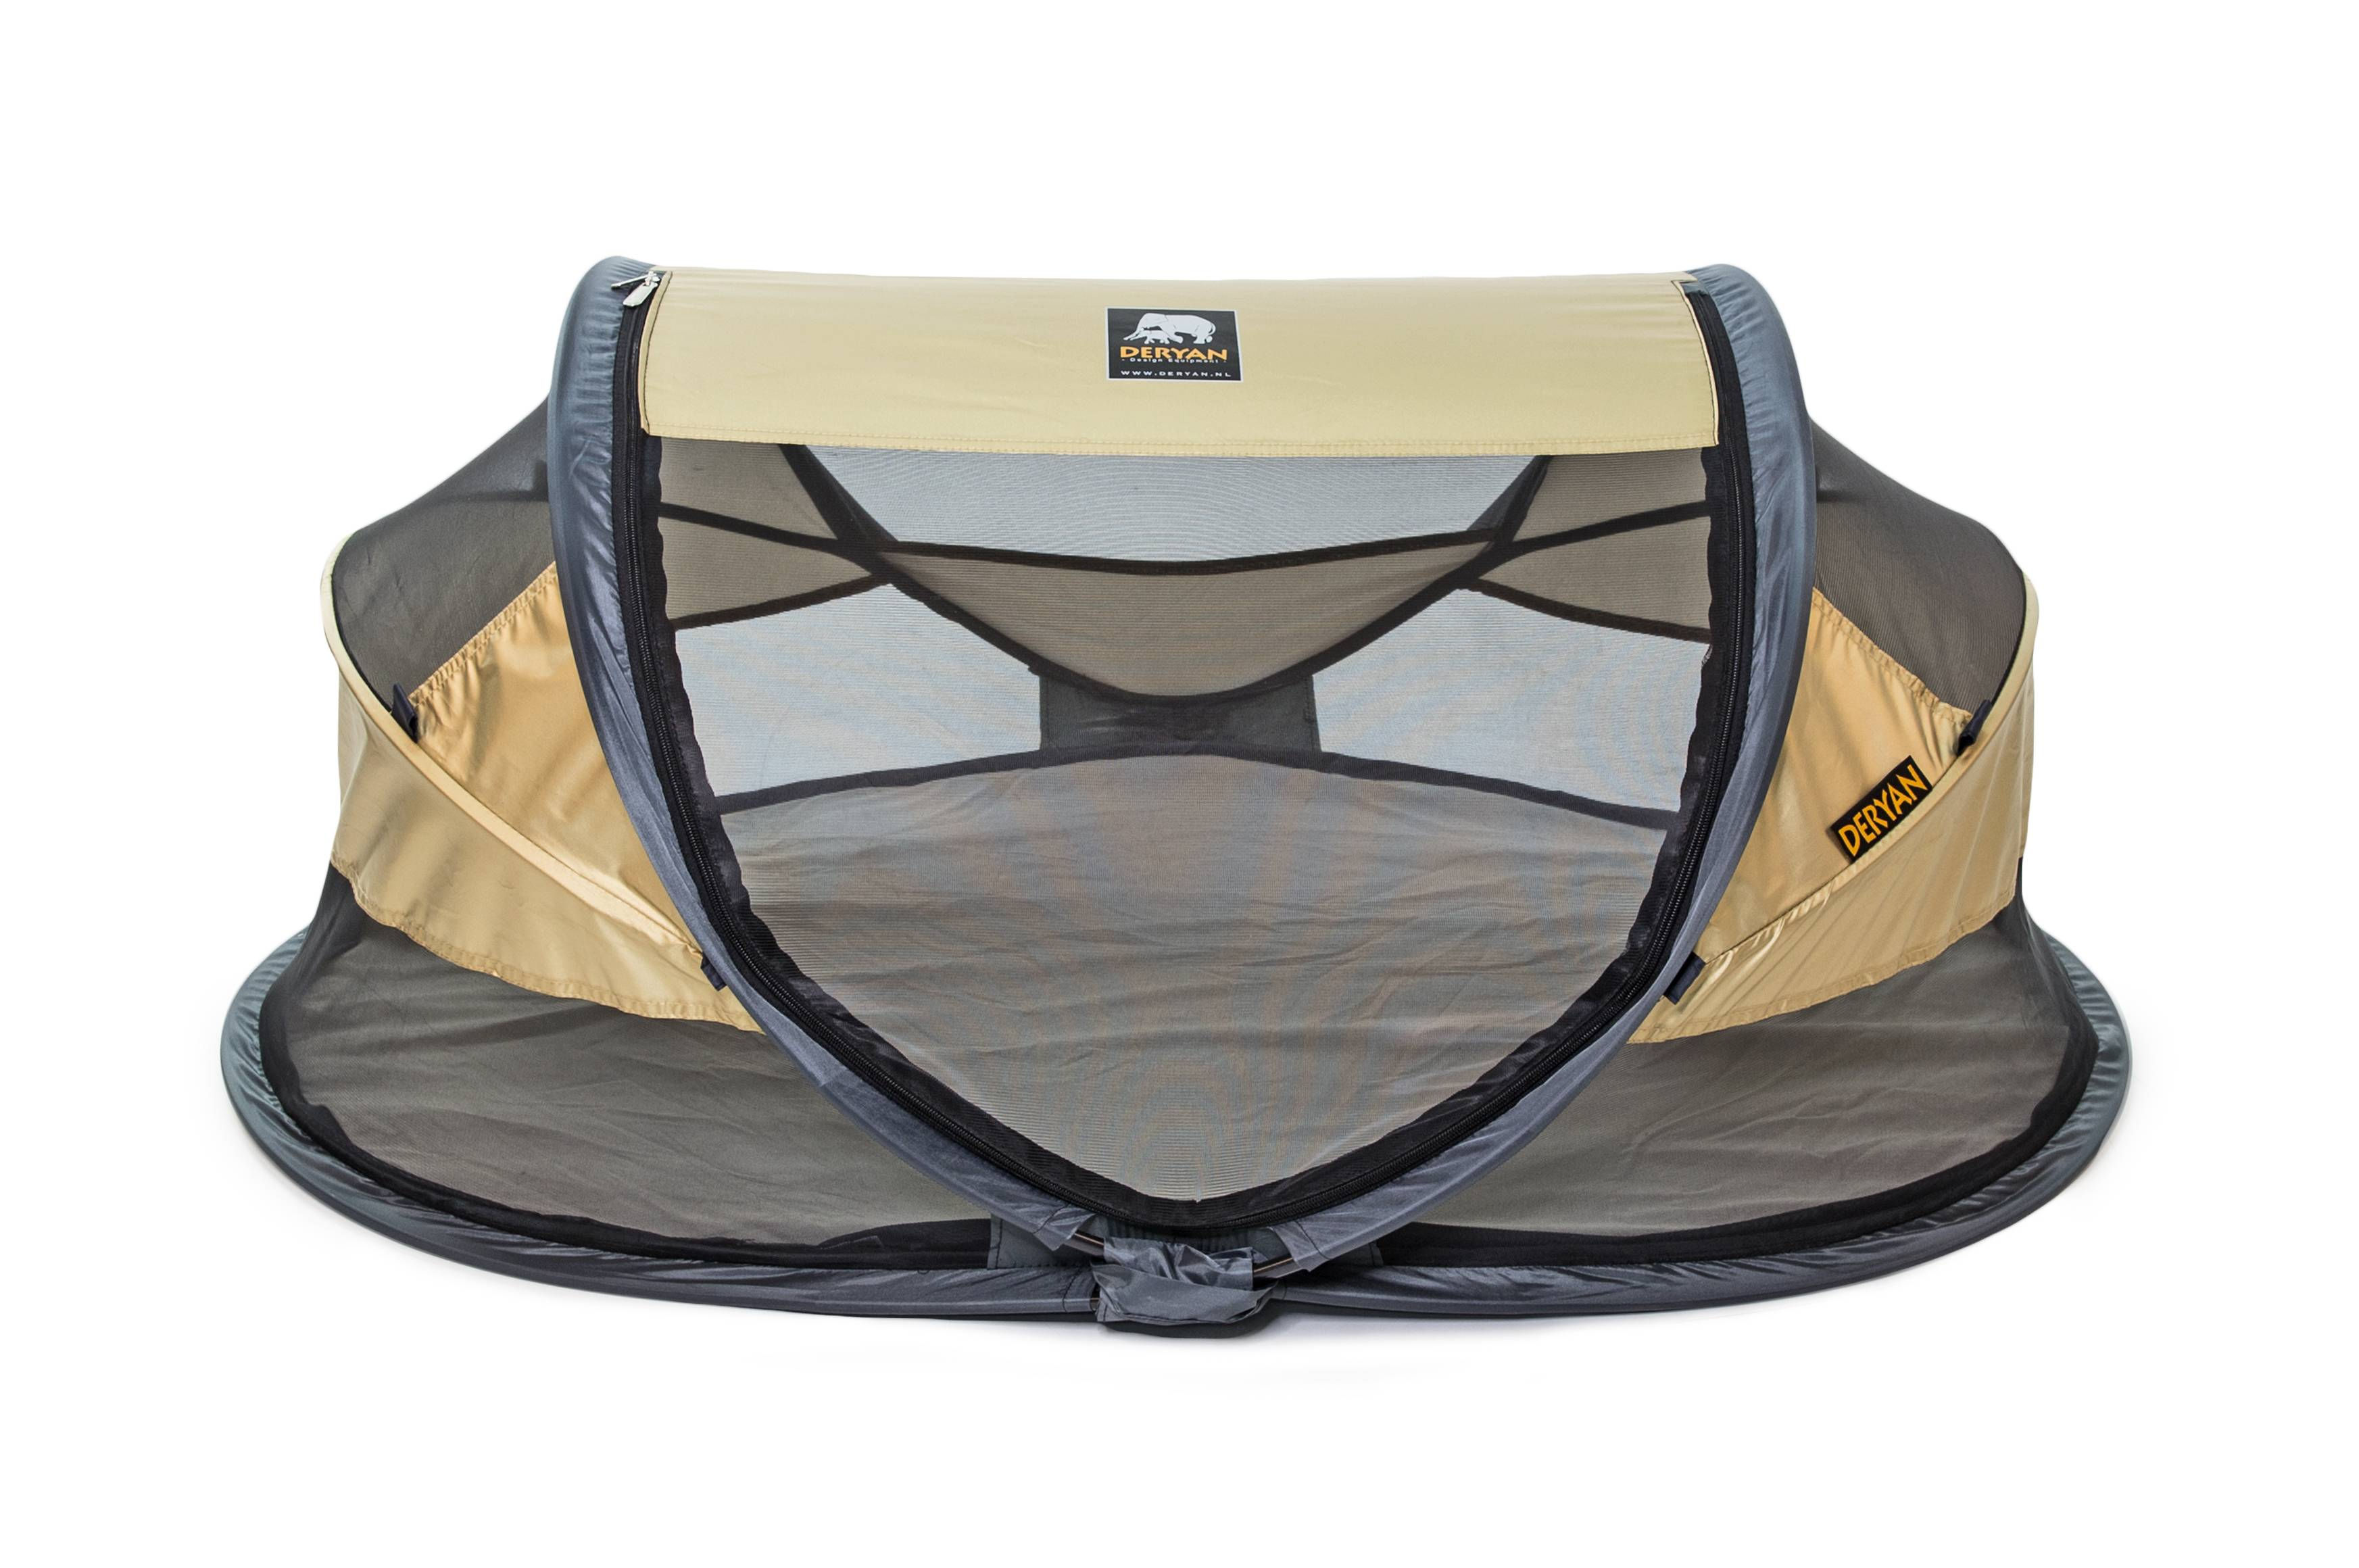 Deryan Travel Cot Baby Deluxe Gold